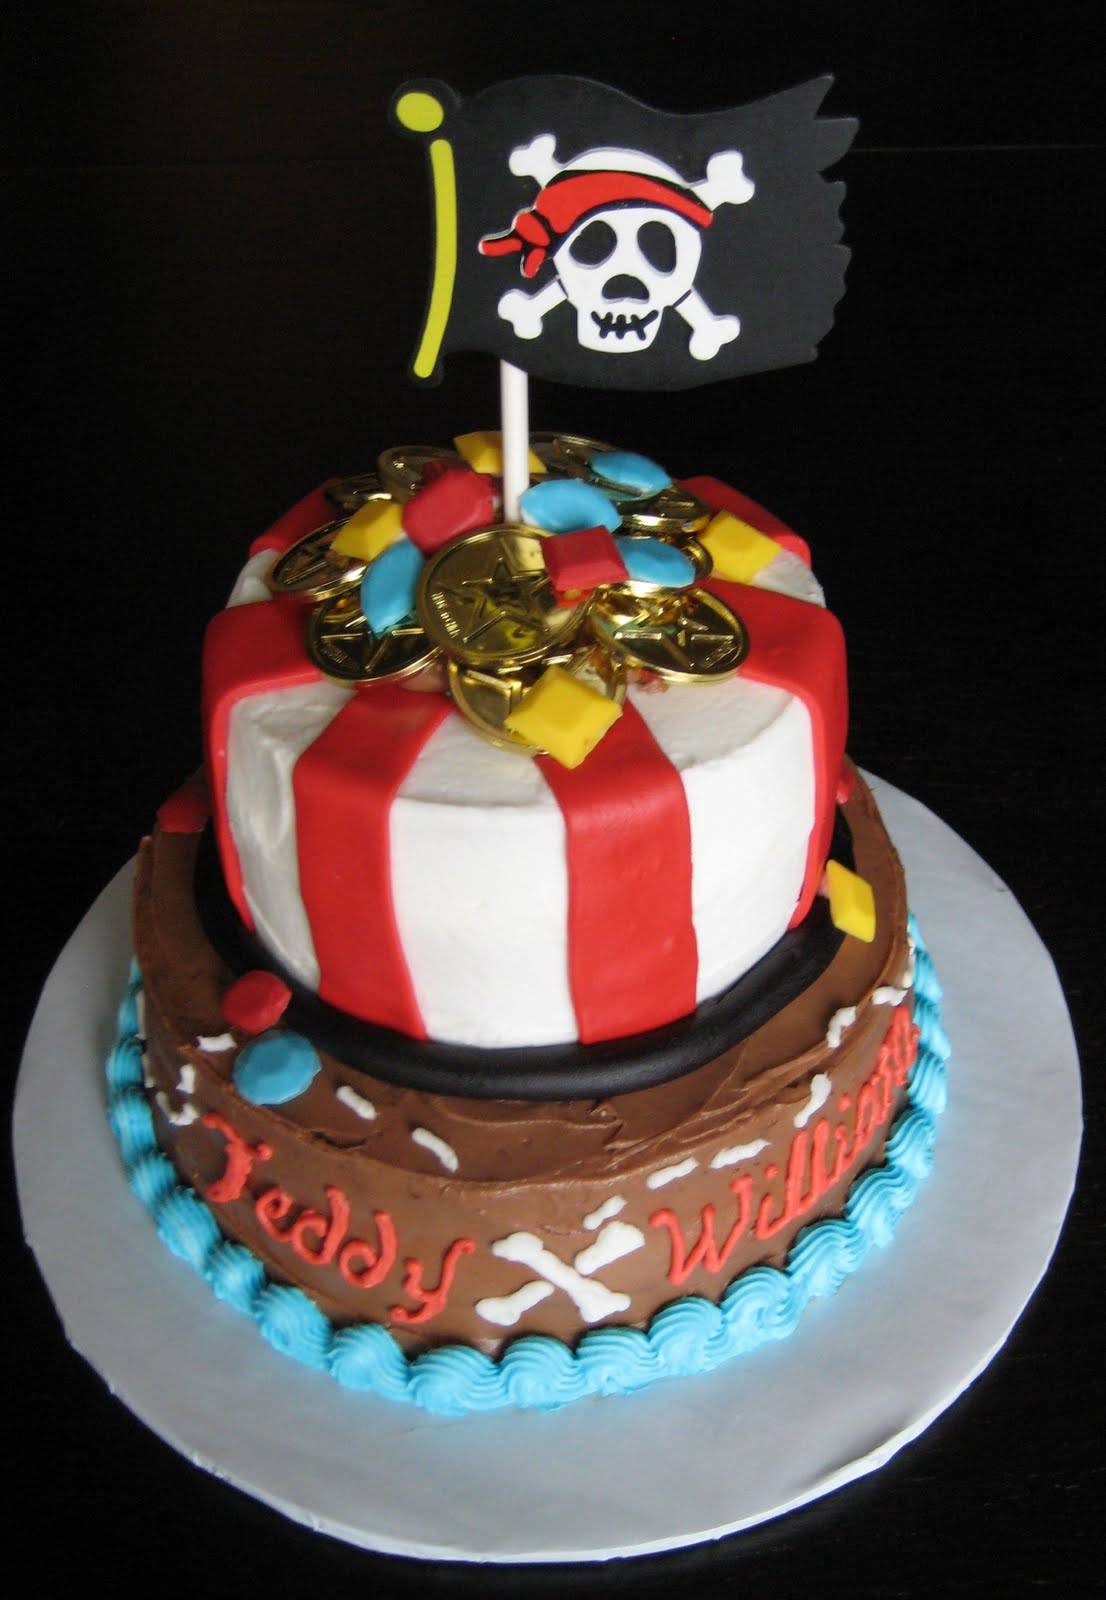 Wondrous Pirate Cakes Decoration Ideas Little Birthday Cakes Funny Birthday Cards Online Alyptdamsfinfo